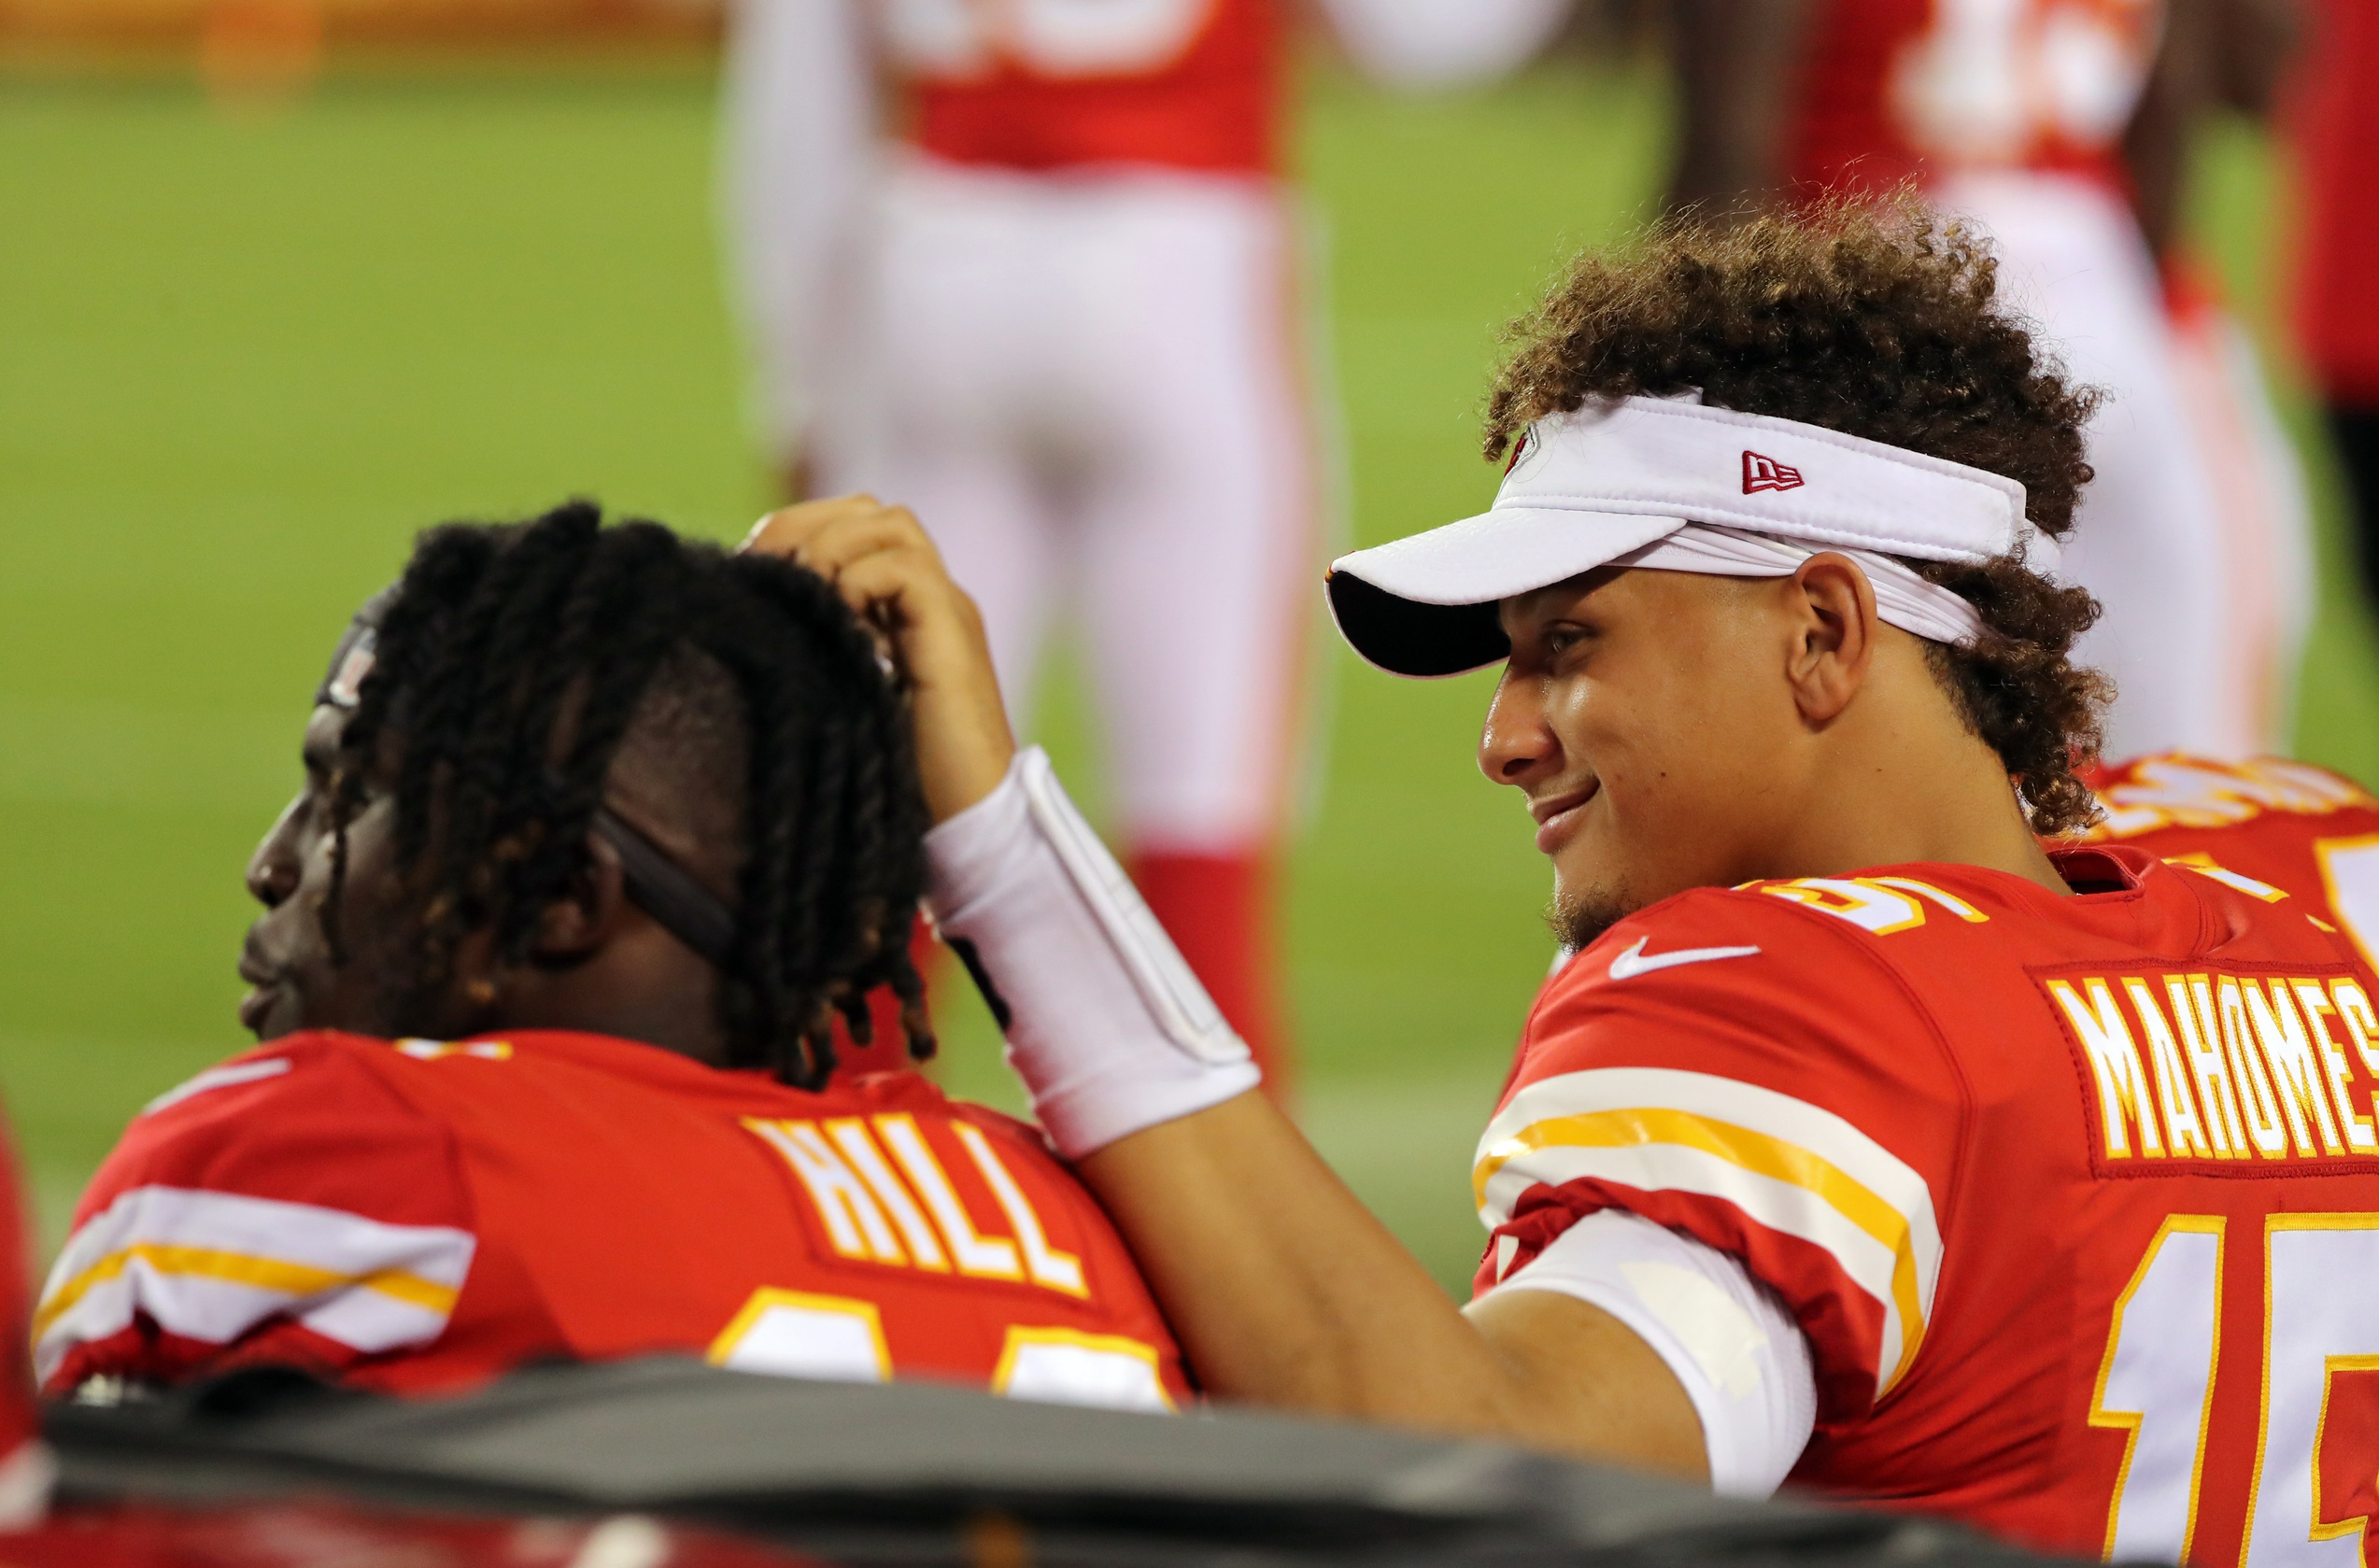 #132: The Chiefs & 49ers Financial Affair